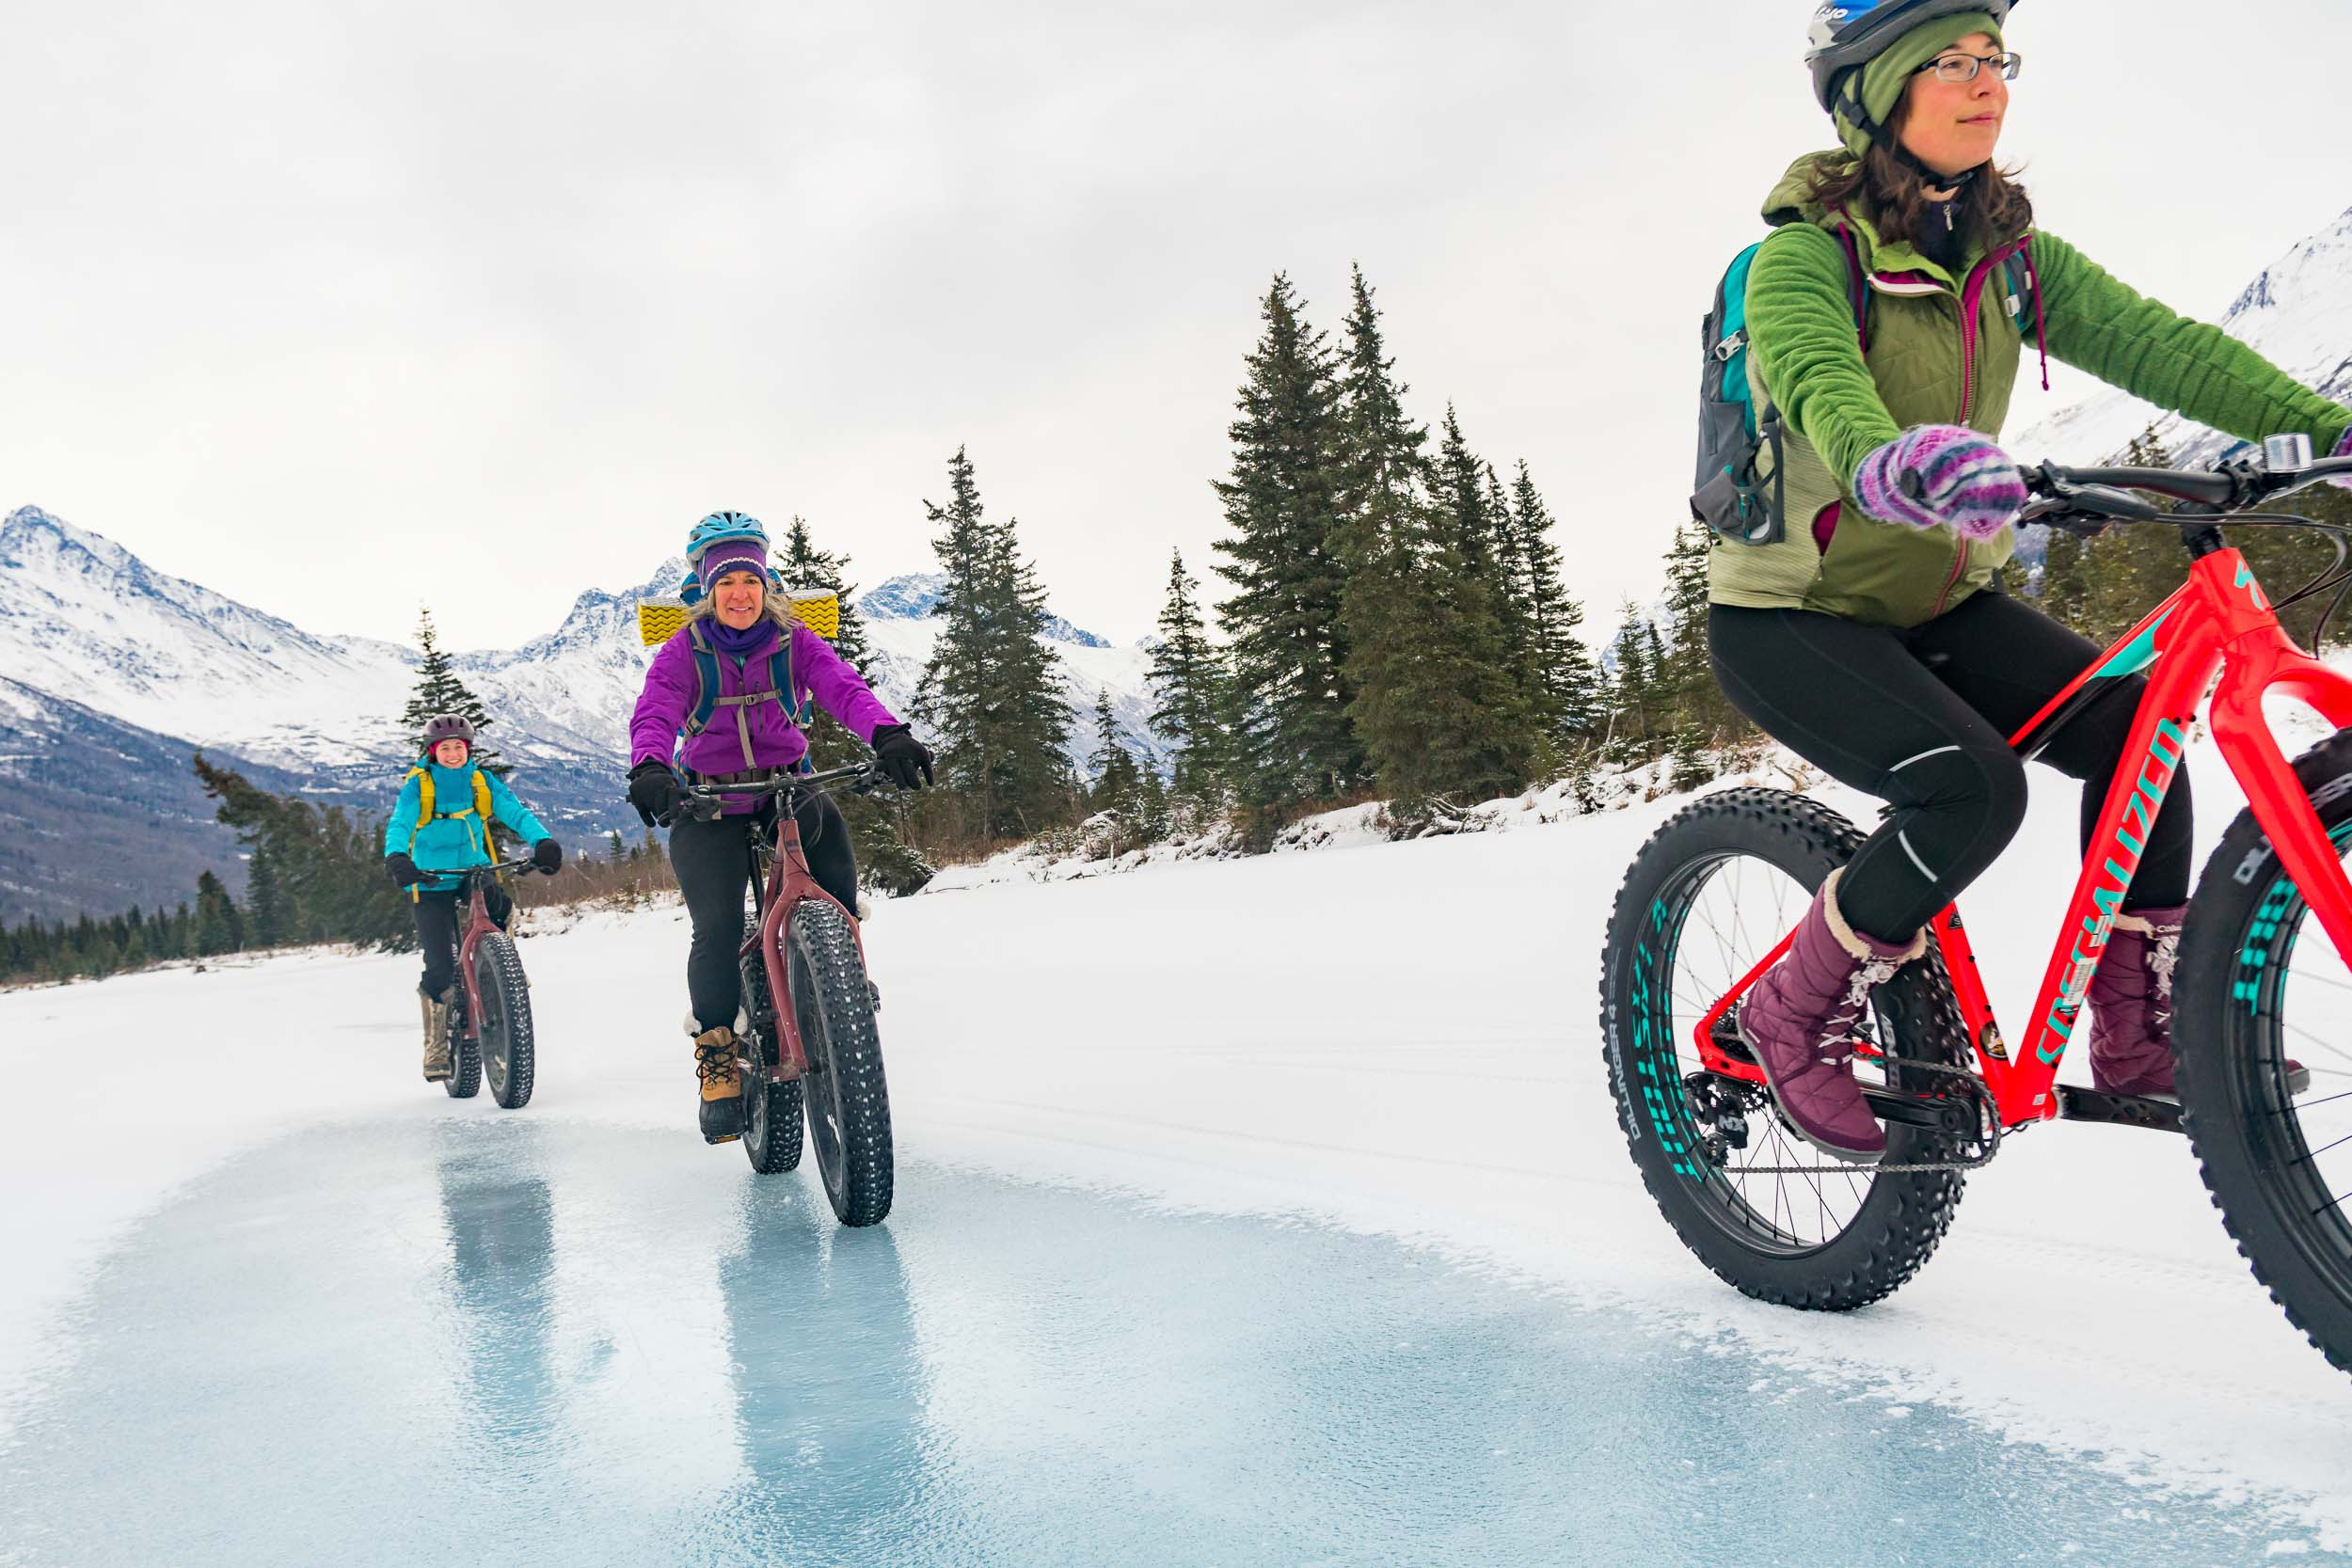 Alaska Photographer Michael DeYoung Friends Fat Tire Winter